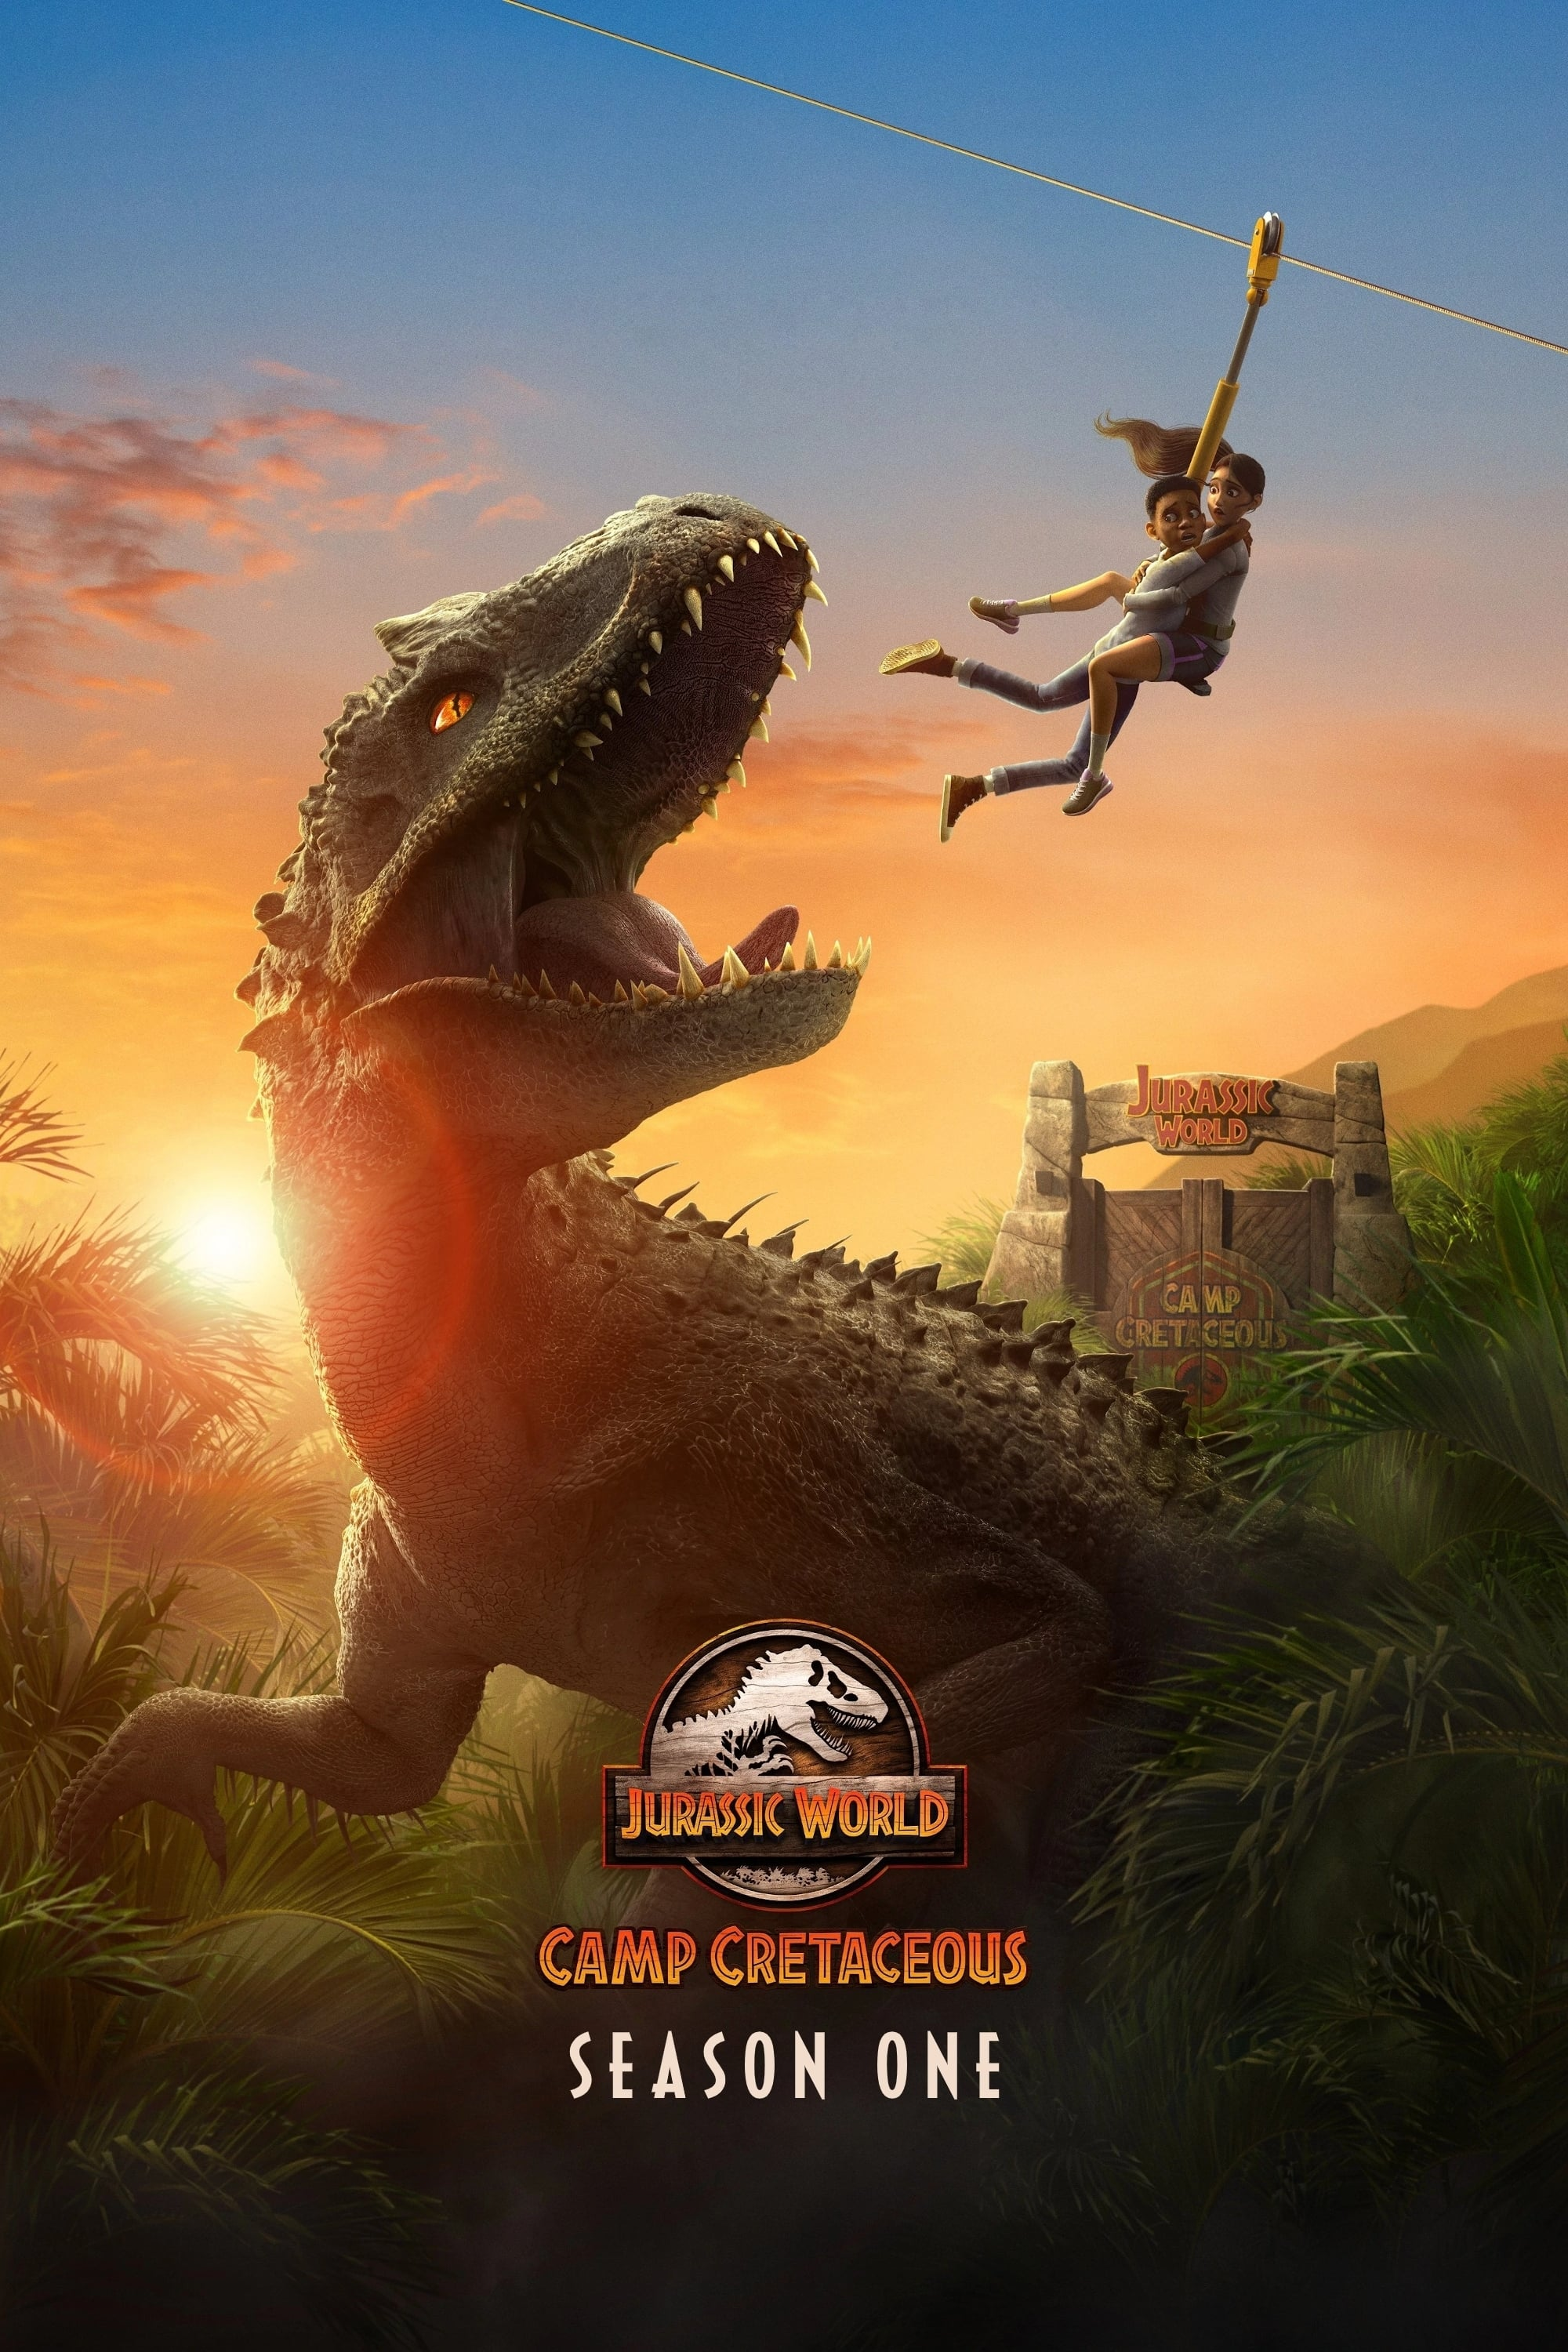 Jurassic World: Camp Cretaceous Batch S1 EP1 (2020) Subtitle Indonesia